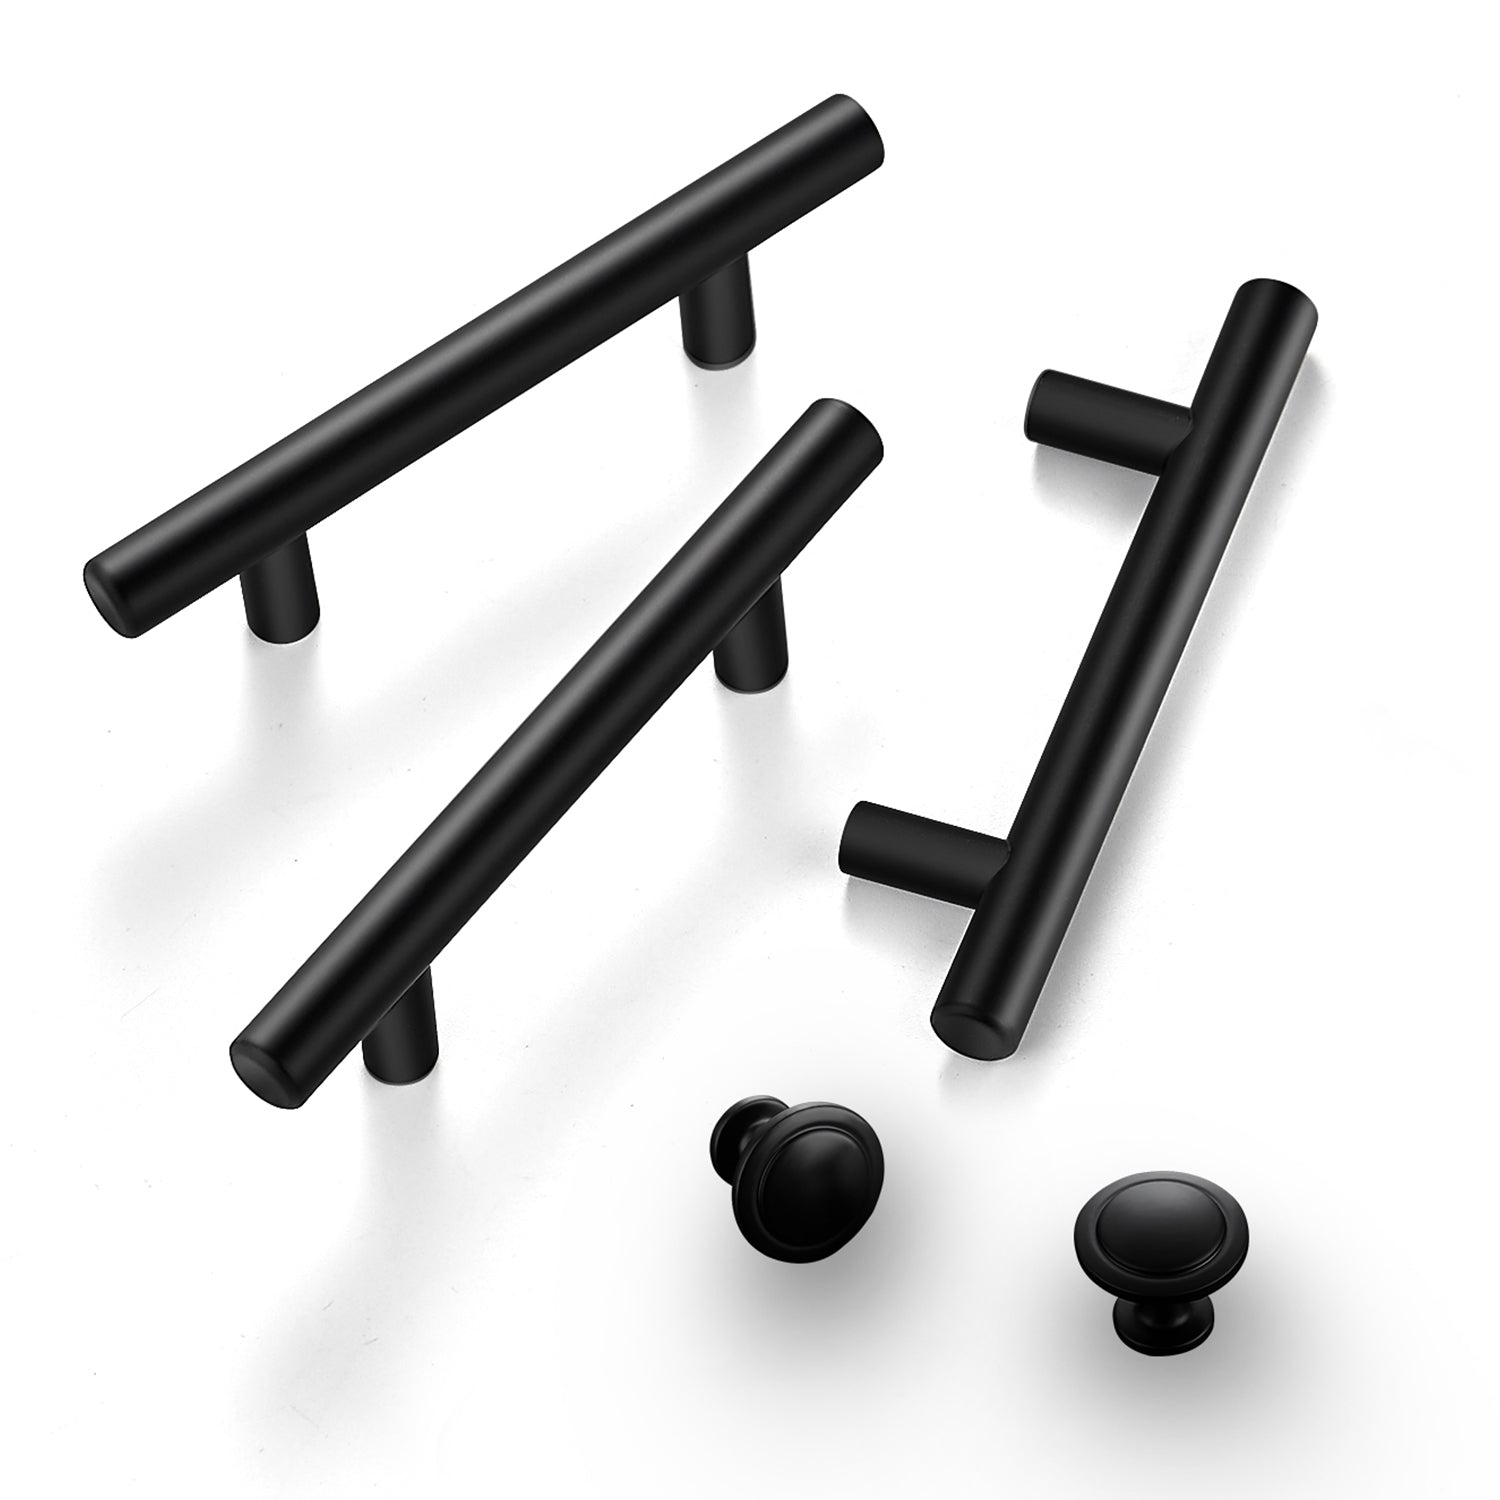 Ravinte 10 Pcs Handles+30Pcs Round Knobs Kitchen Cabinet Handles Matte Black Cabinet Pulls Black Drawer Pulls Kitchen Cabinet Hardware Kitchen Handles for Cabinets Cupboard Handles Drawer Handles